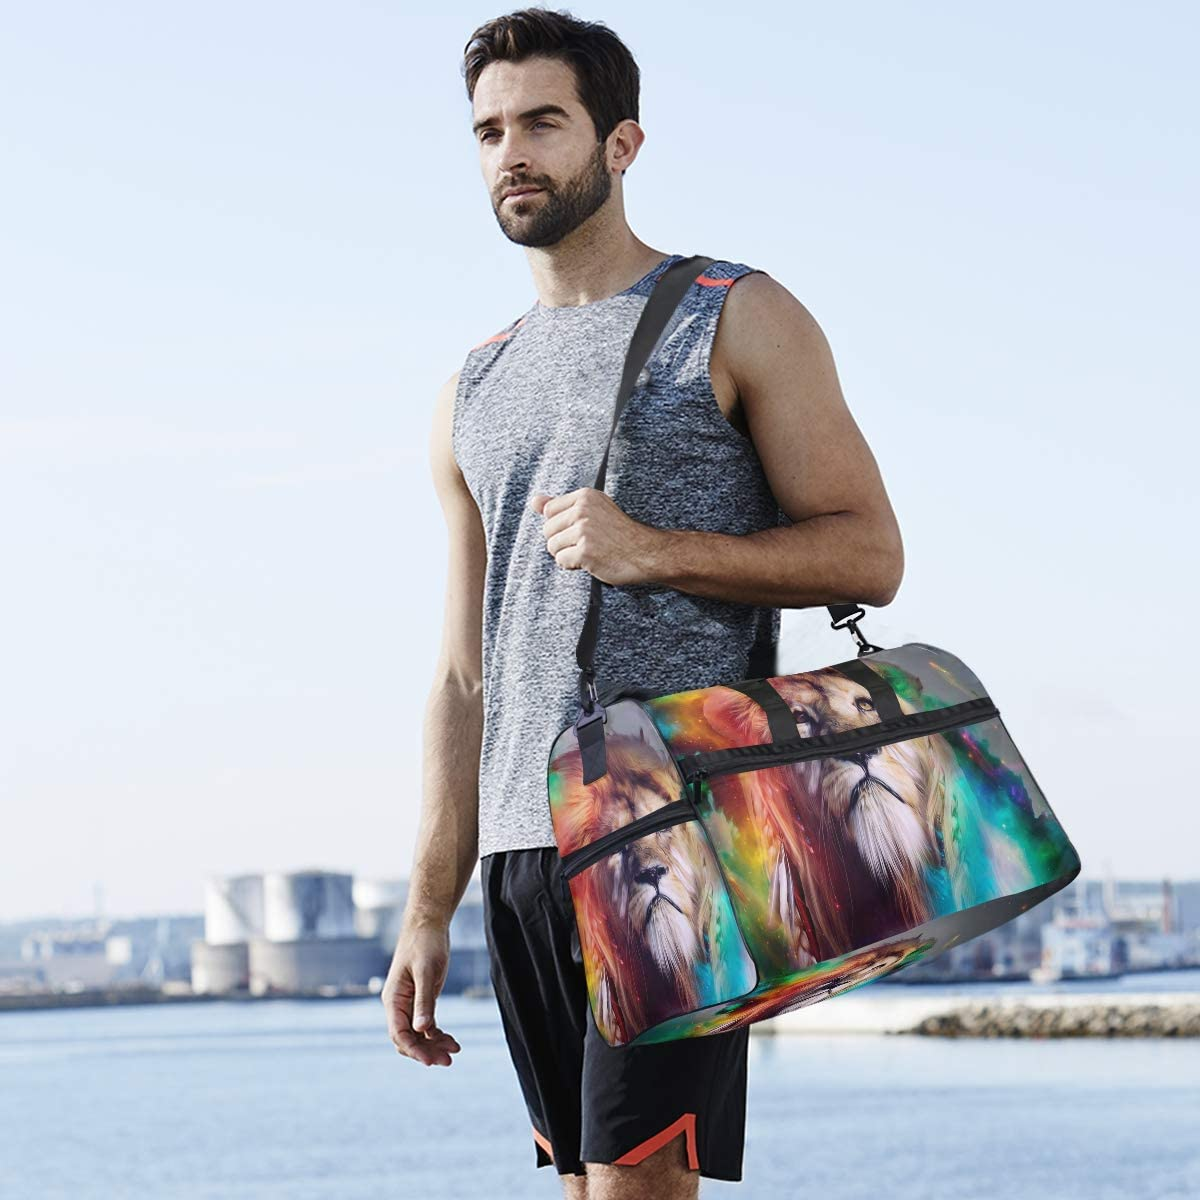 MUOOUM Colorful Art Lion Large Duffle Bags Sports Gym Bag with Shoes Compartment for Men and Women